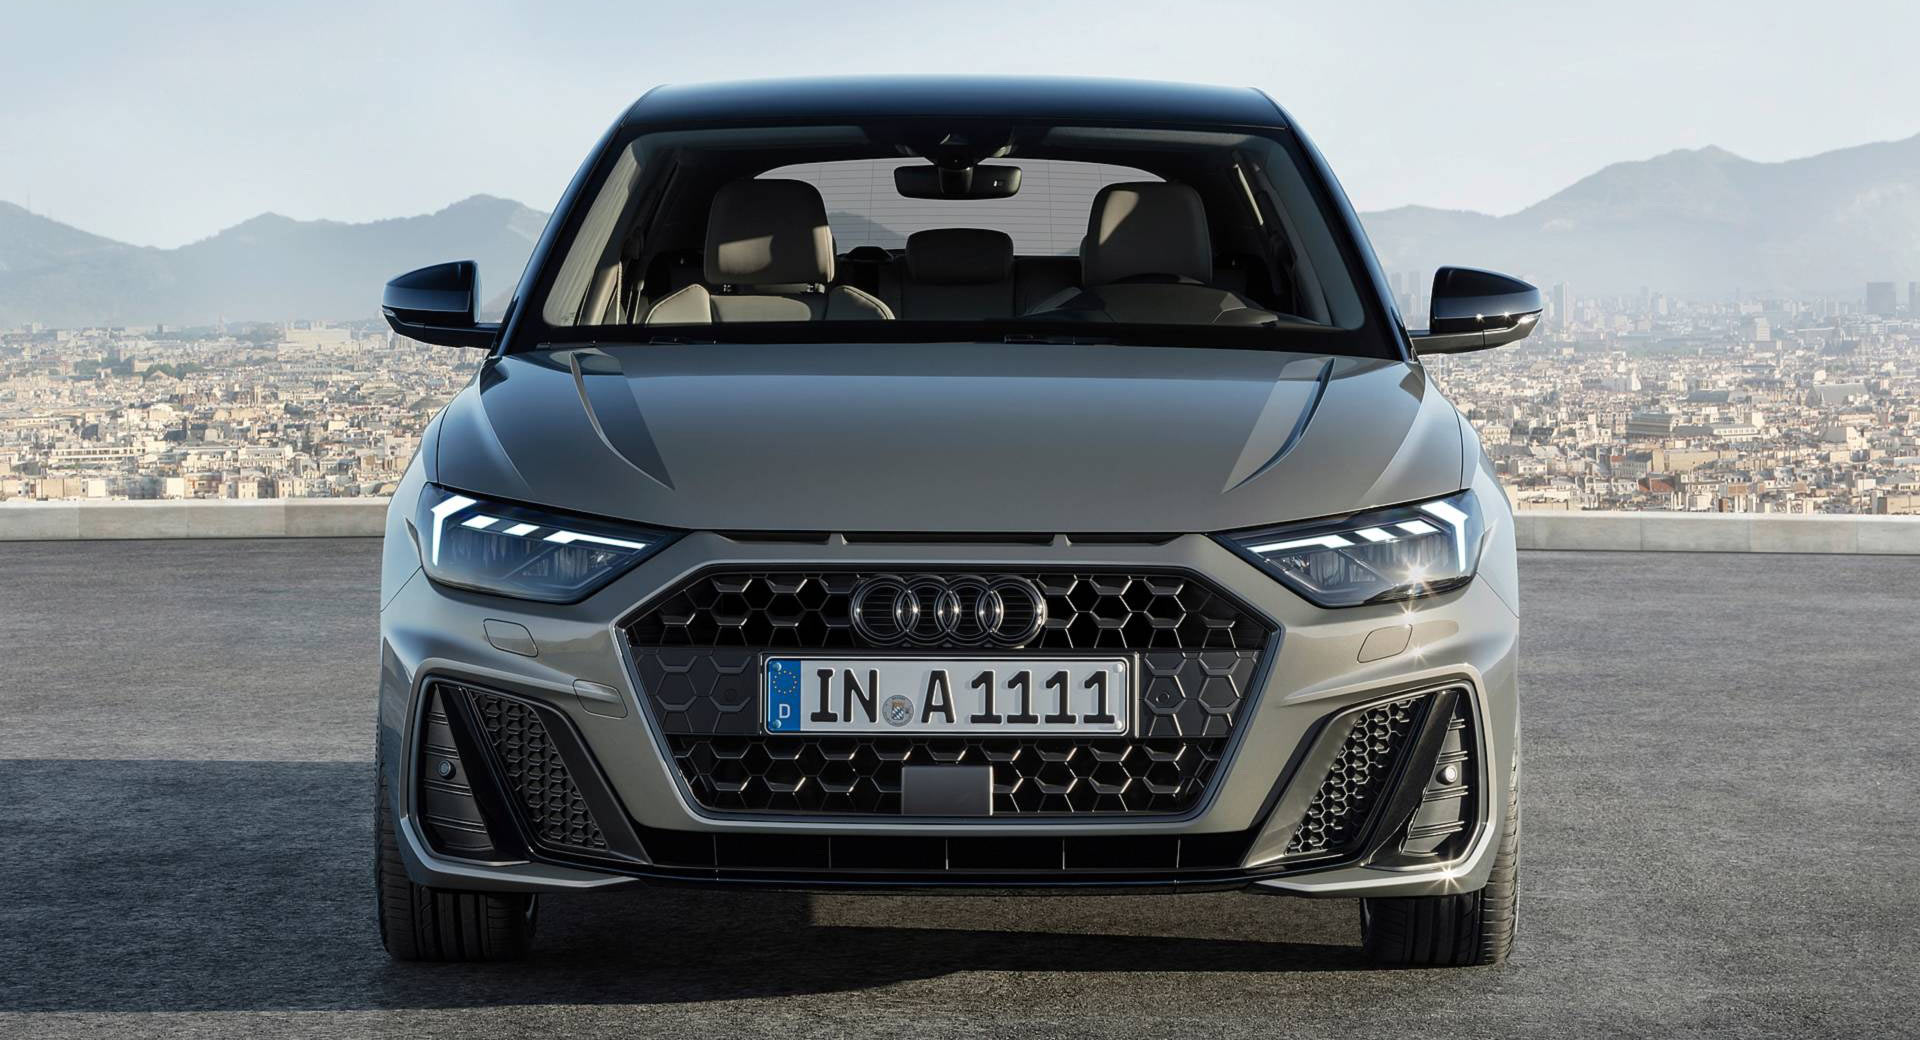 hot audi s1 to arrive in late 2019 with 250hp turbo and. Black Bedroom Furniture Sets. Home Design Ideas